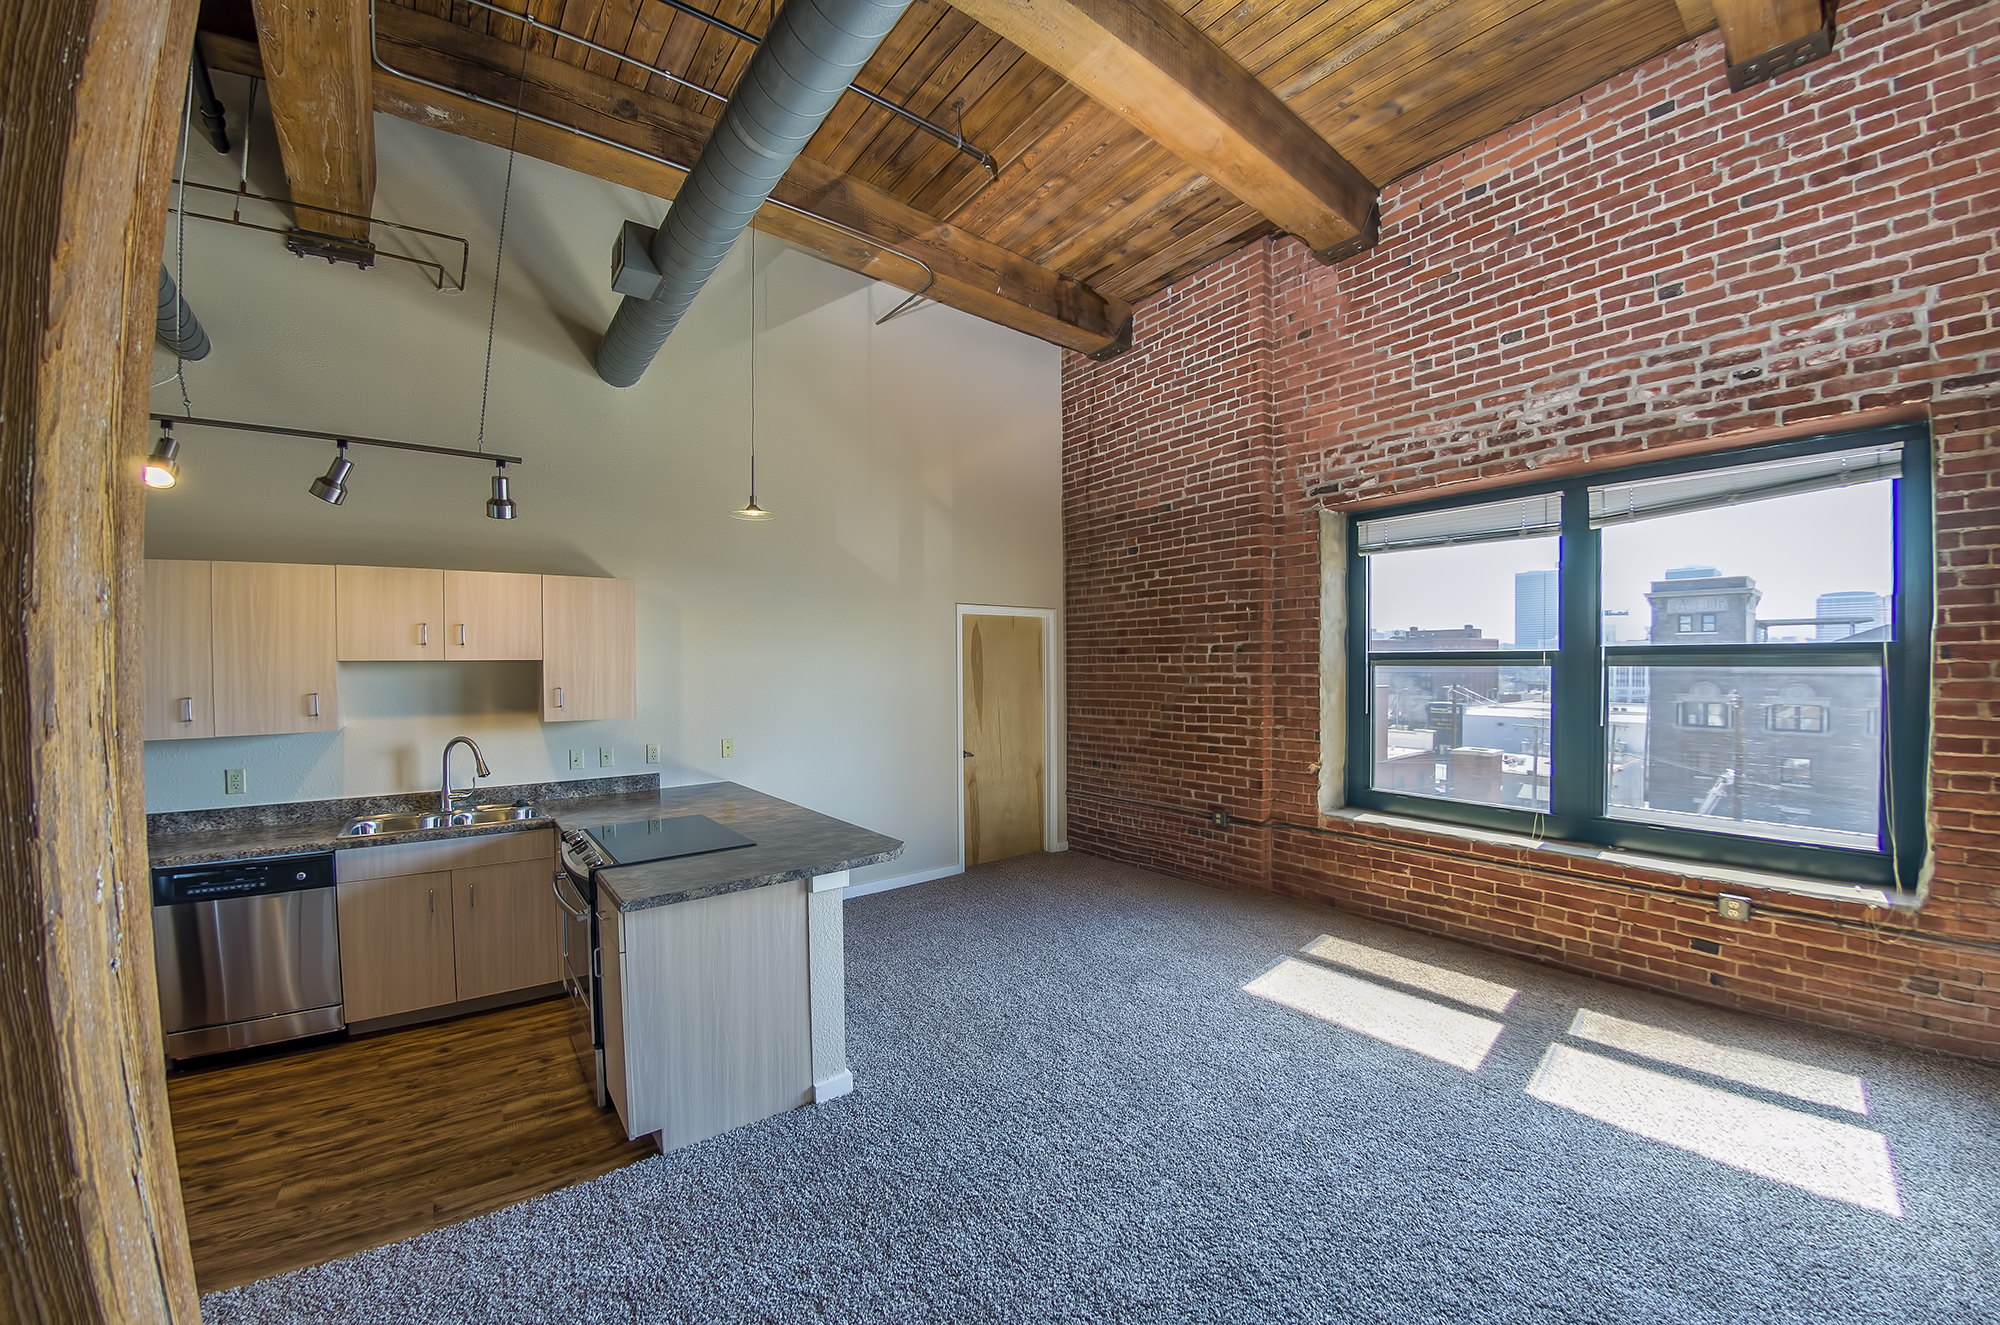 Featured For Rent Ebt 504 Kansas City Lofts Condos